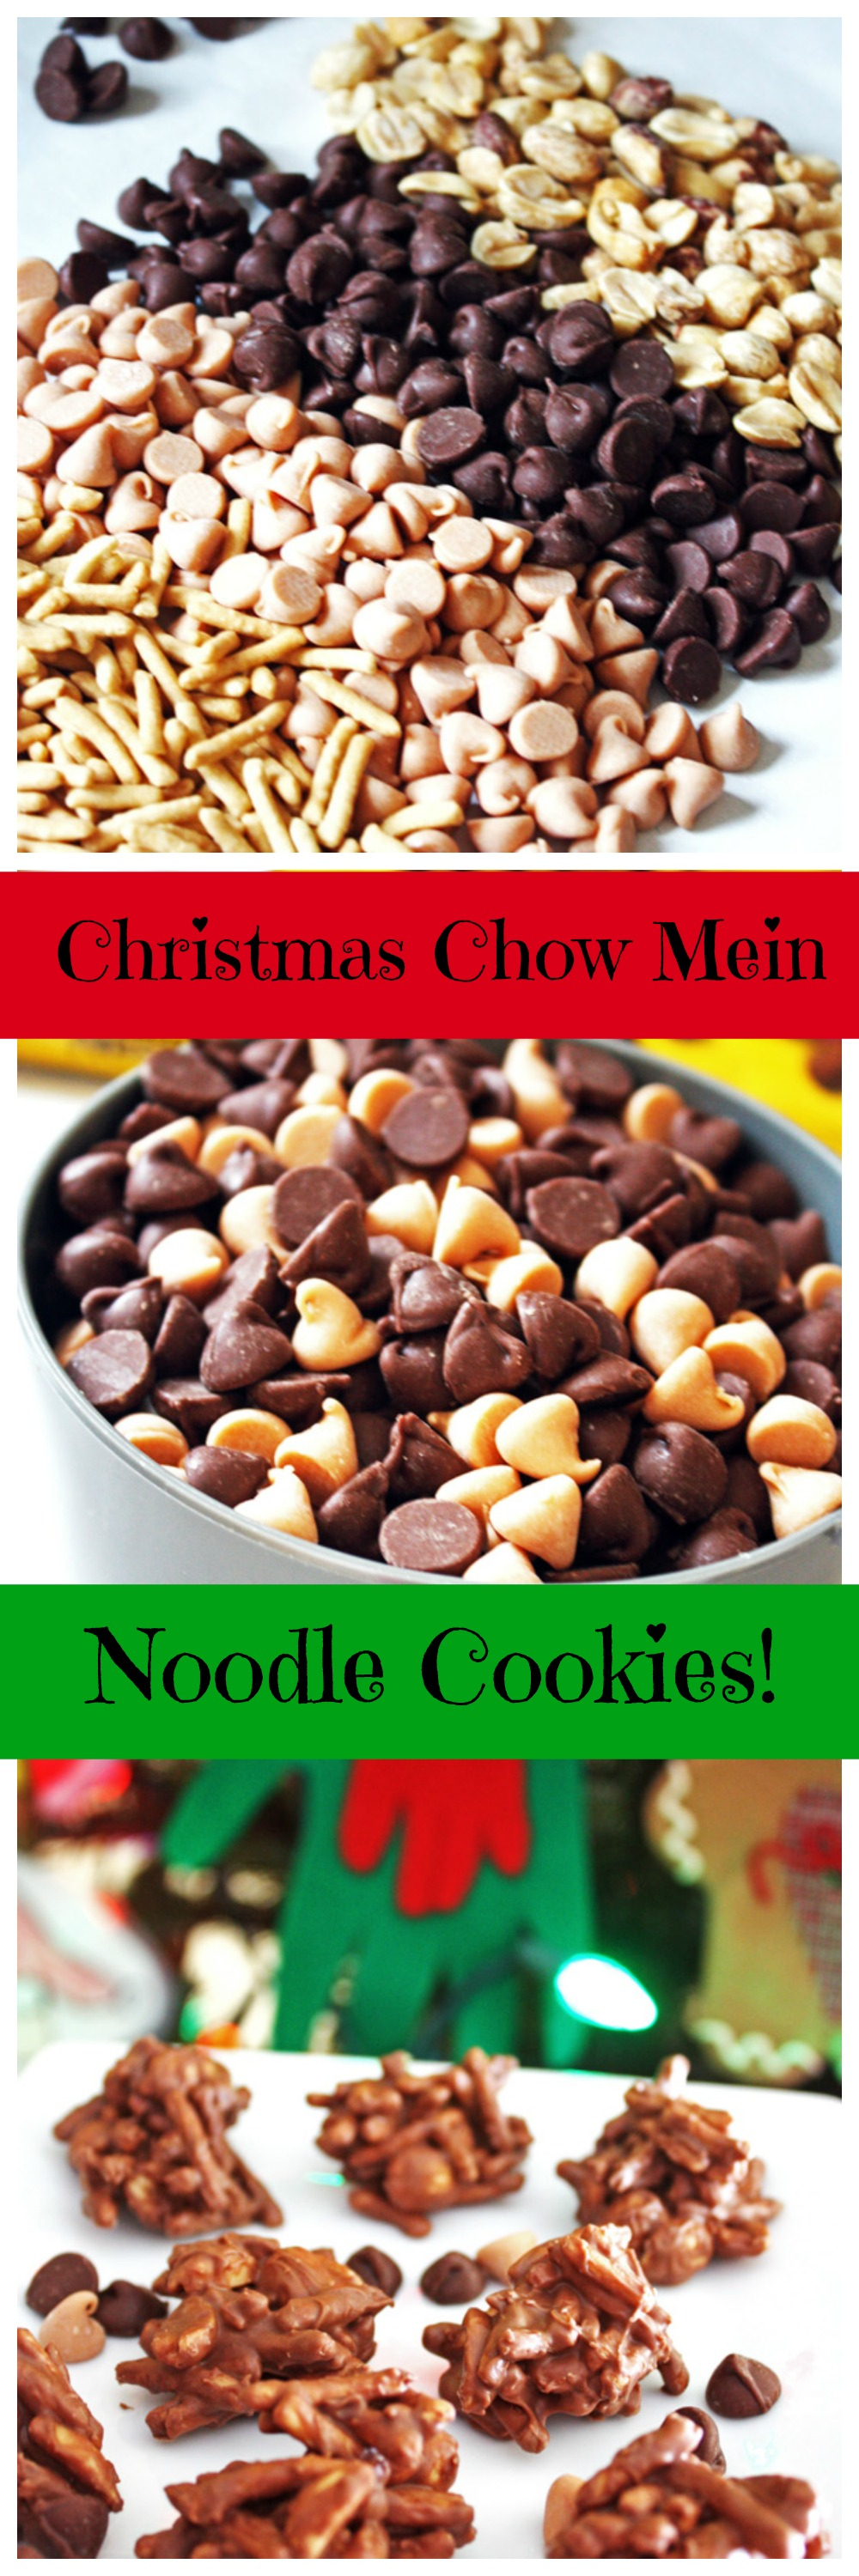 christmas chow mein noodle cookies